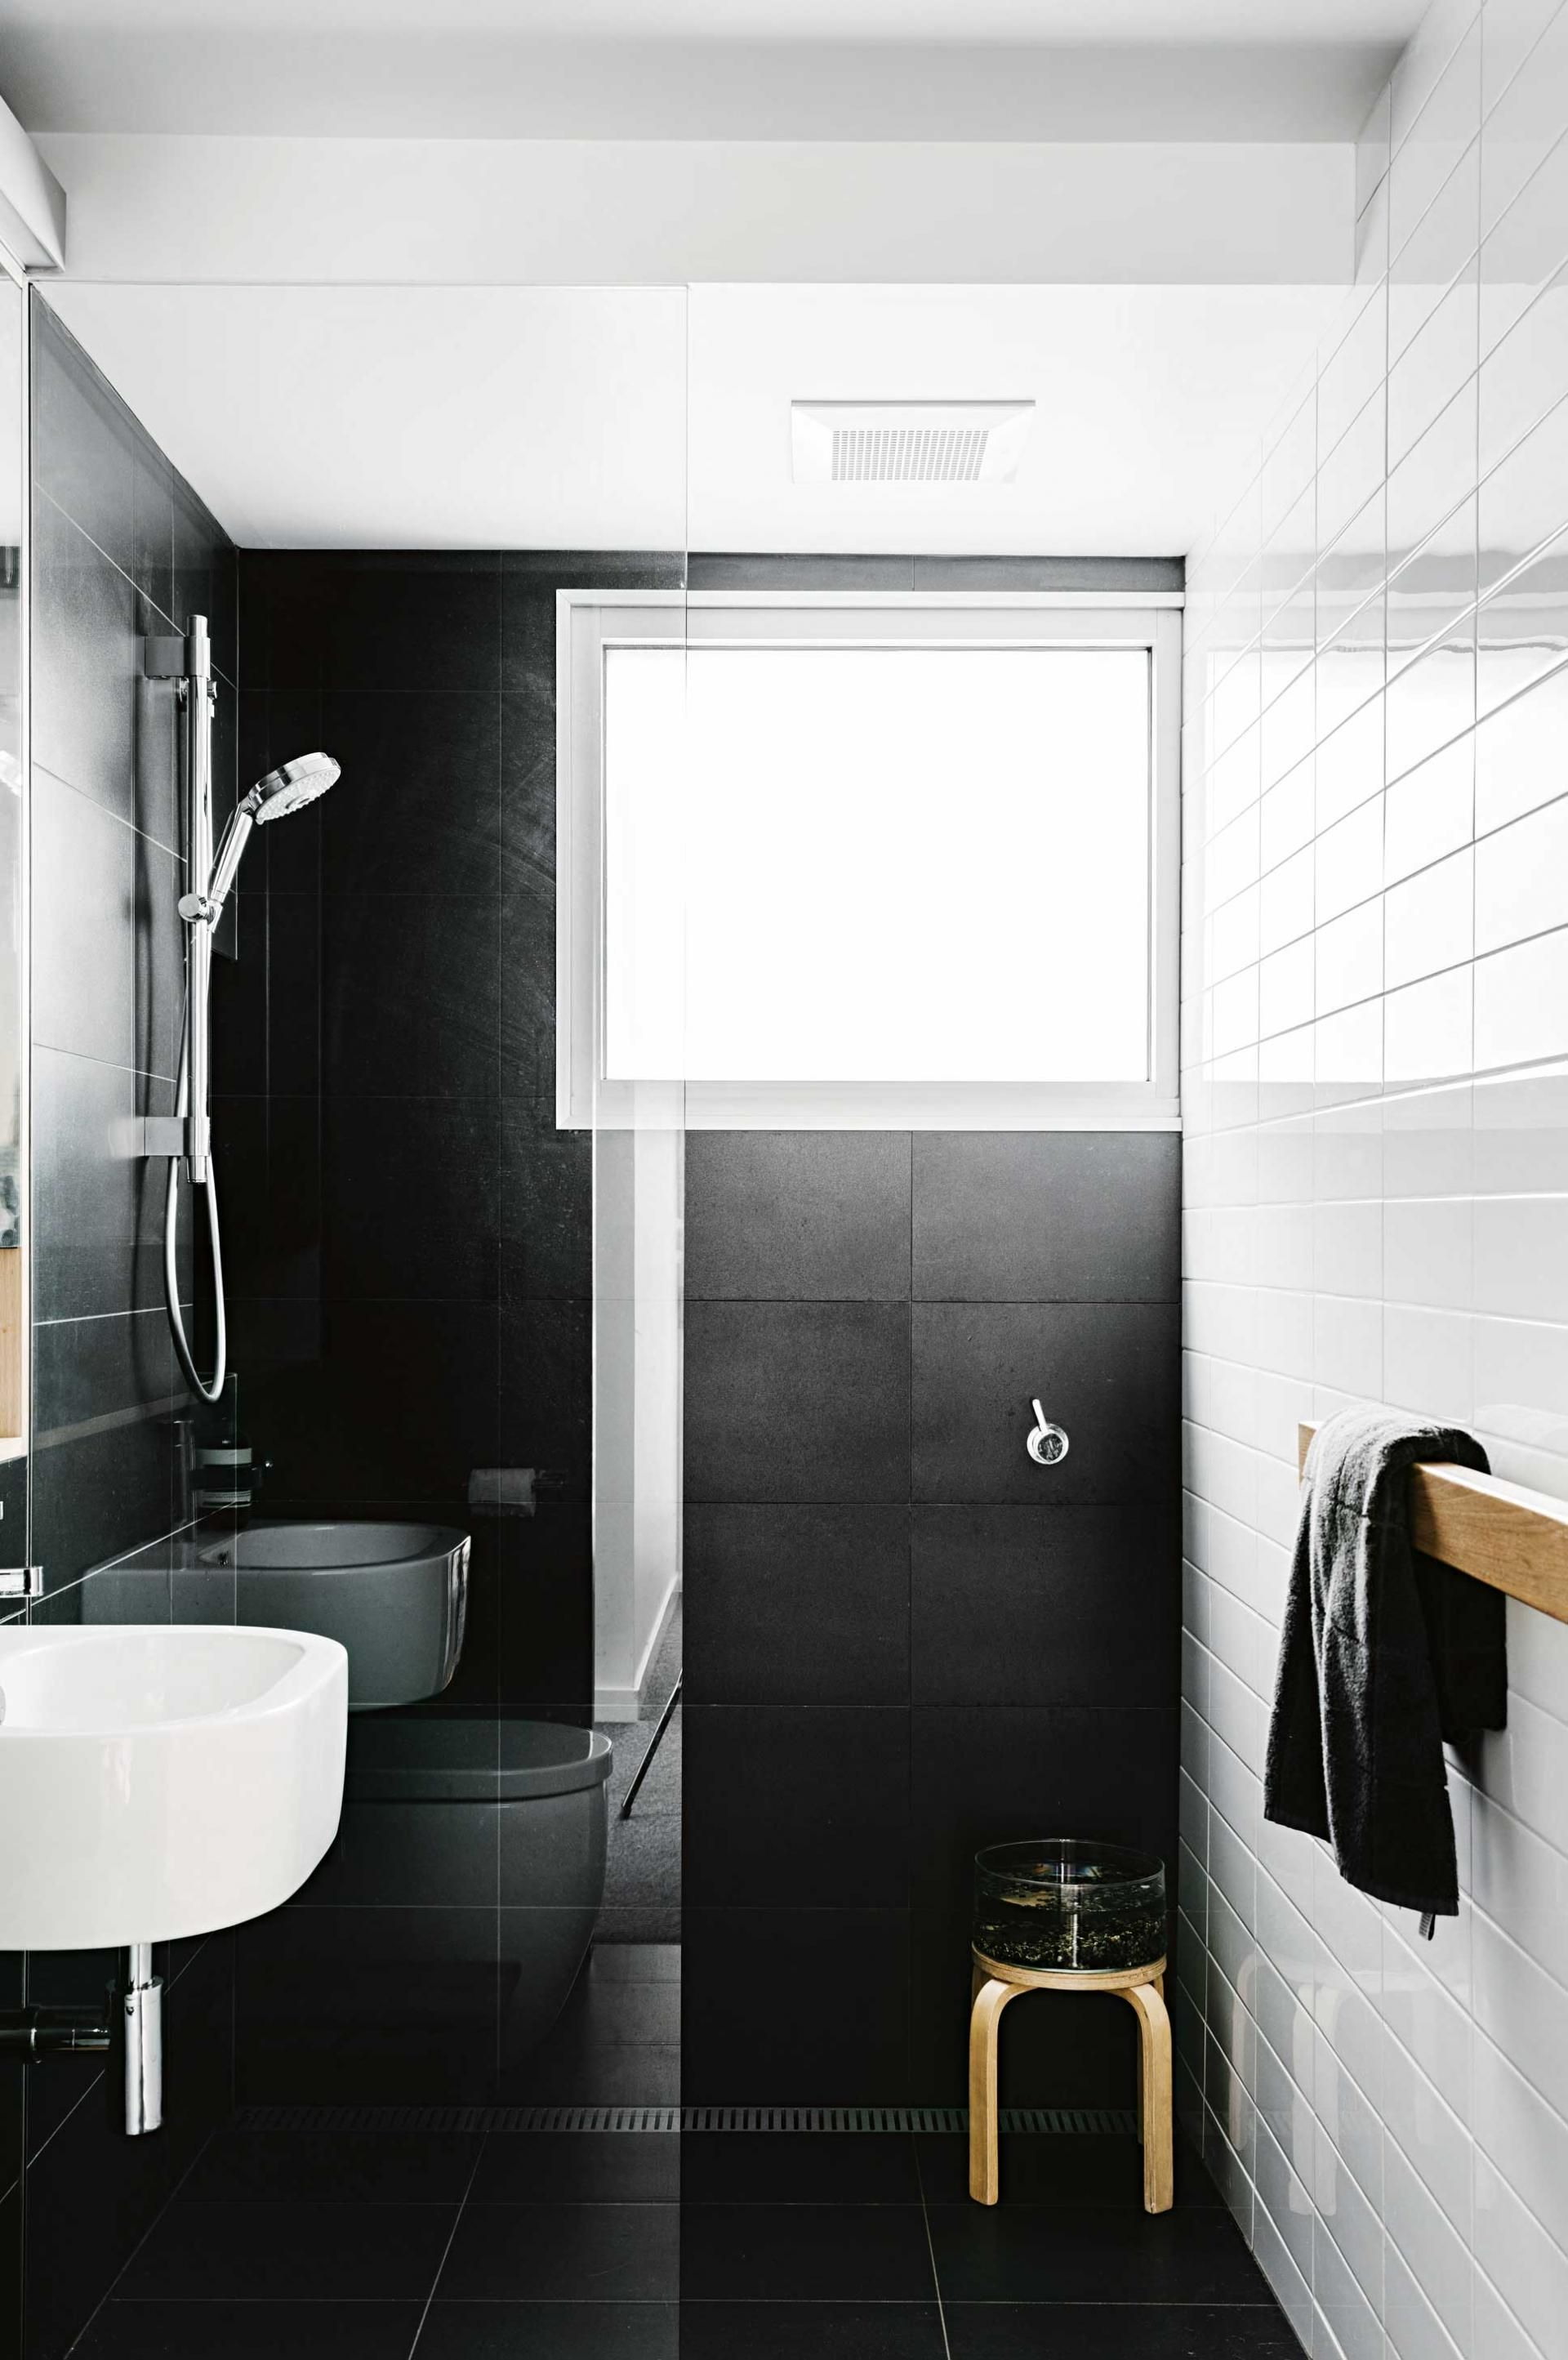 Pic Of Black And White Bathrooms Black And White Bathrooms top black and white bathrooms cool black and white bathroom design ideas digsdigs